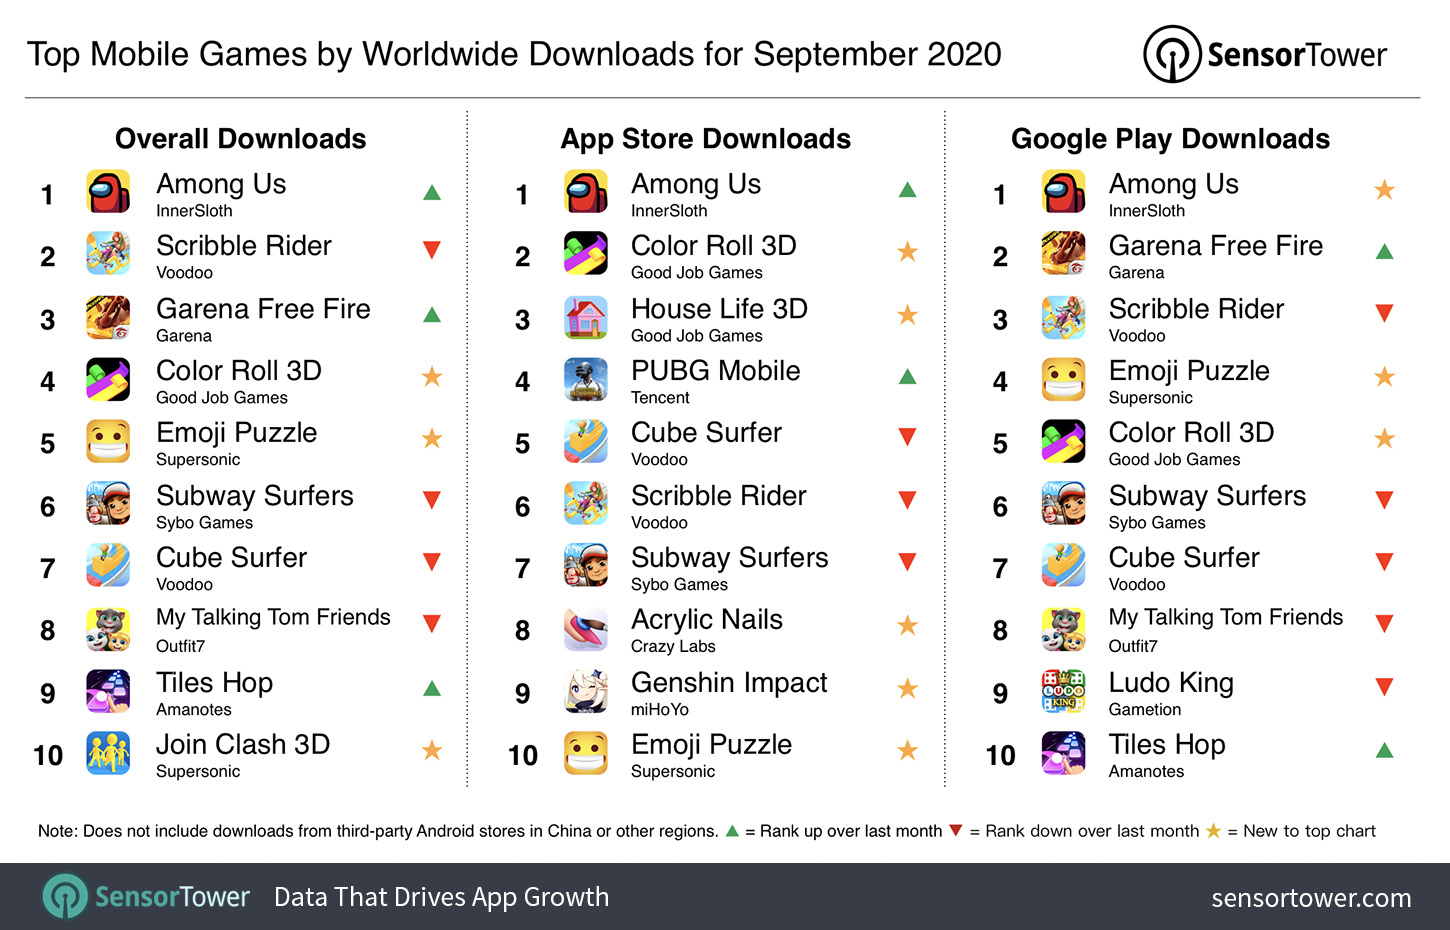 Top Mobile Games Worldwide for September 2020 by Downloads